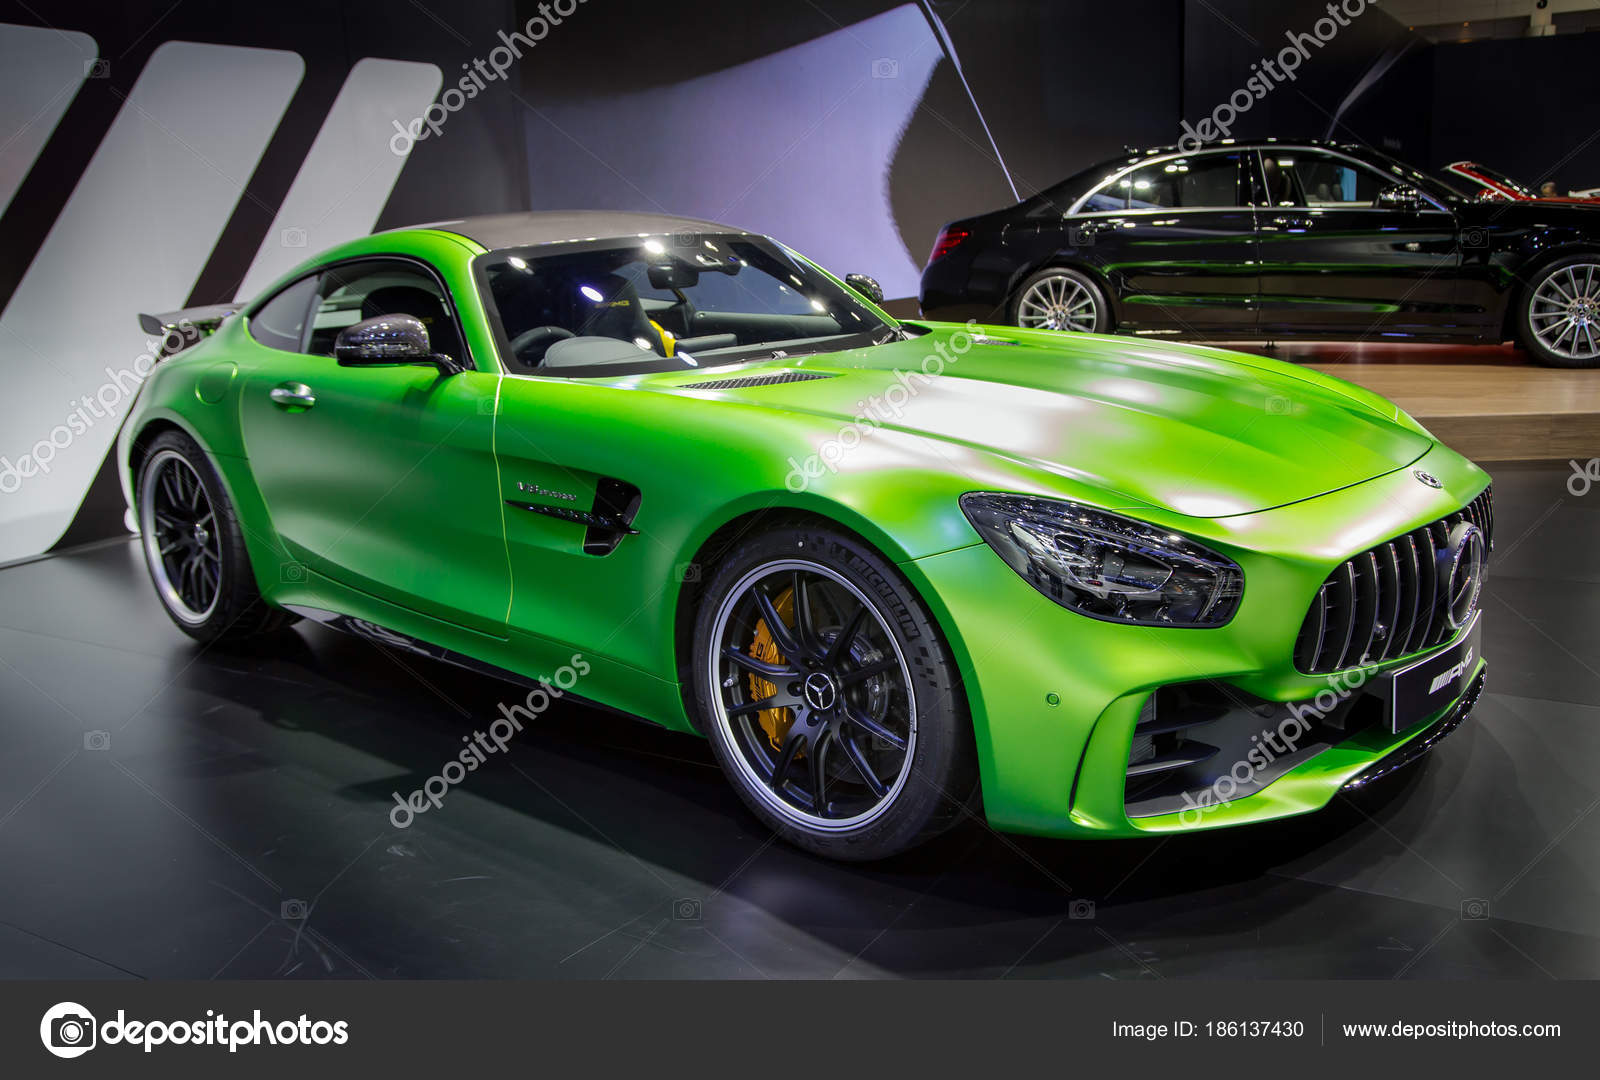 Mercedes Benz Amg Sport Coupe Stock Editorial Photo C Isampuntarat Gmail Com 186137430